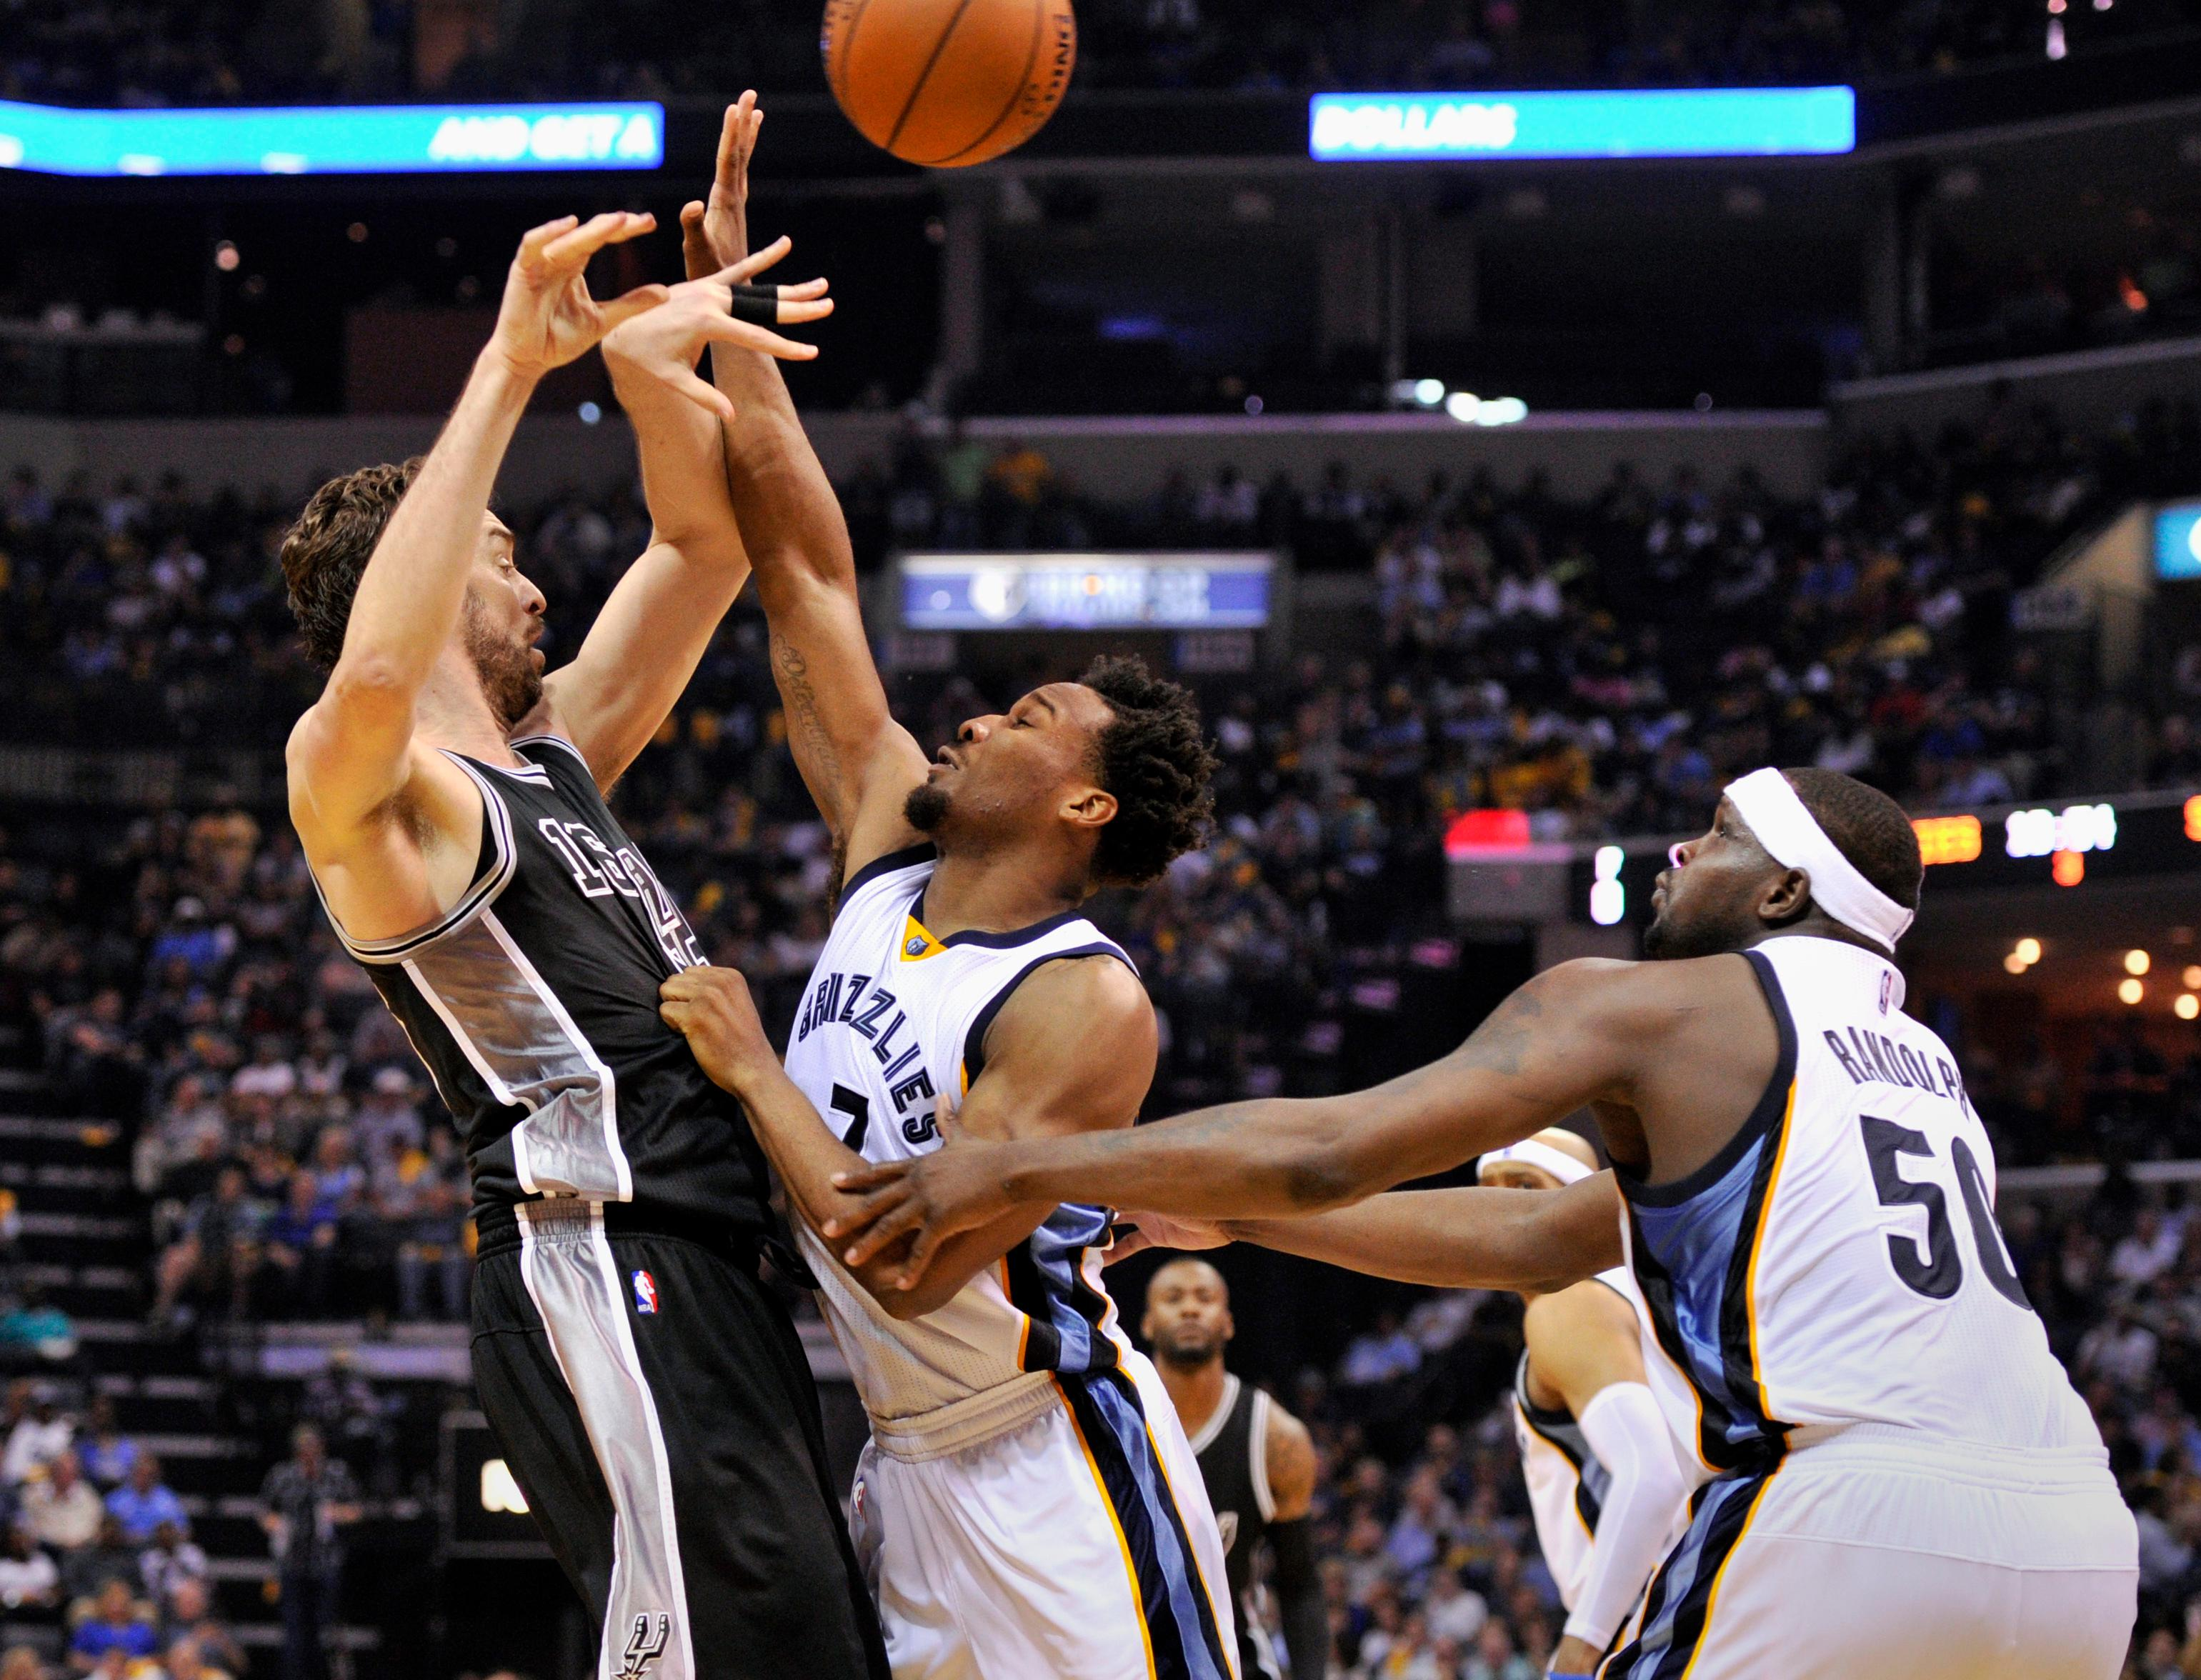 San Antonio Spurs center Pau Gasol, left, passes the ball over Memphis Grizzlies guard Wayne Selden Jr., center, and forward Zach Randolph (50) during the second half of Game 3 in an NBA basketball first-round playoff series Thursday, April 20, 2017, in Memphis, Tenn. (AP Photo/Brandon Dill)